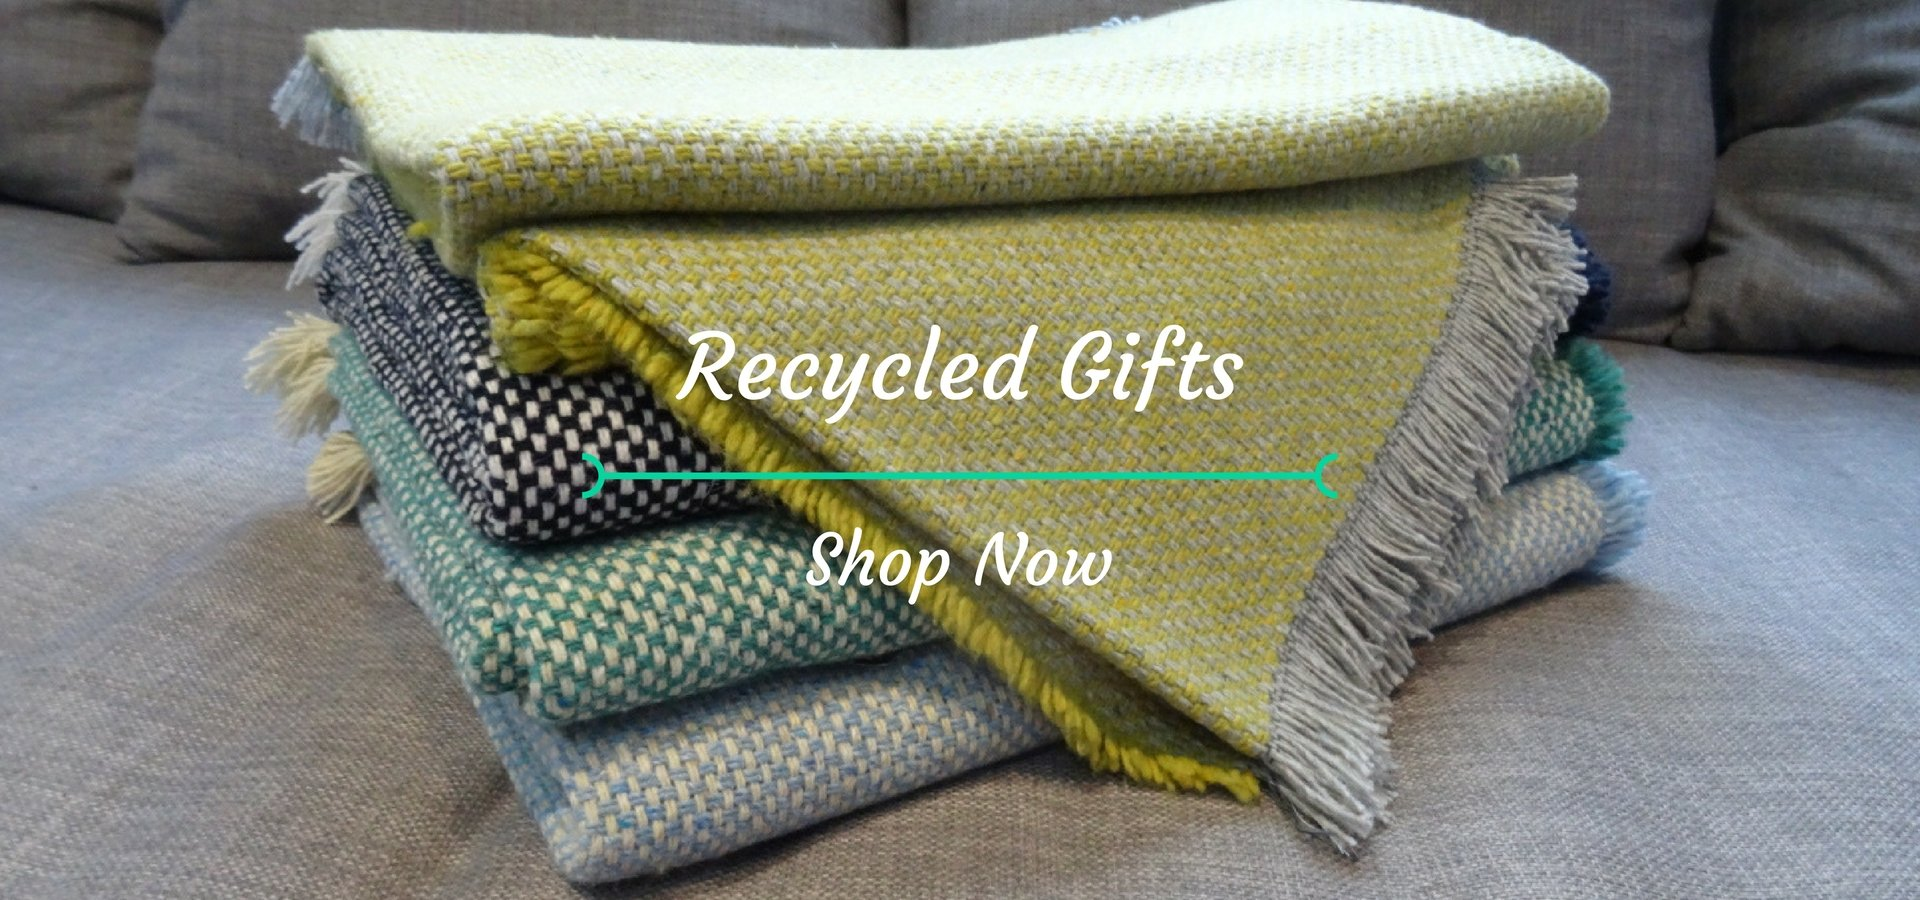 Shop recycled gifts